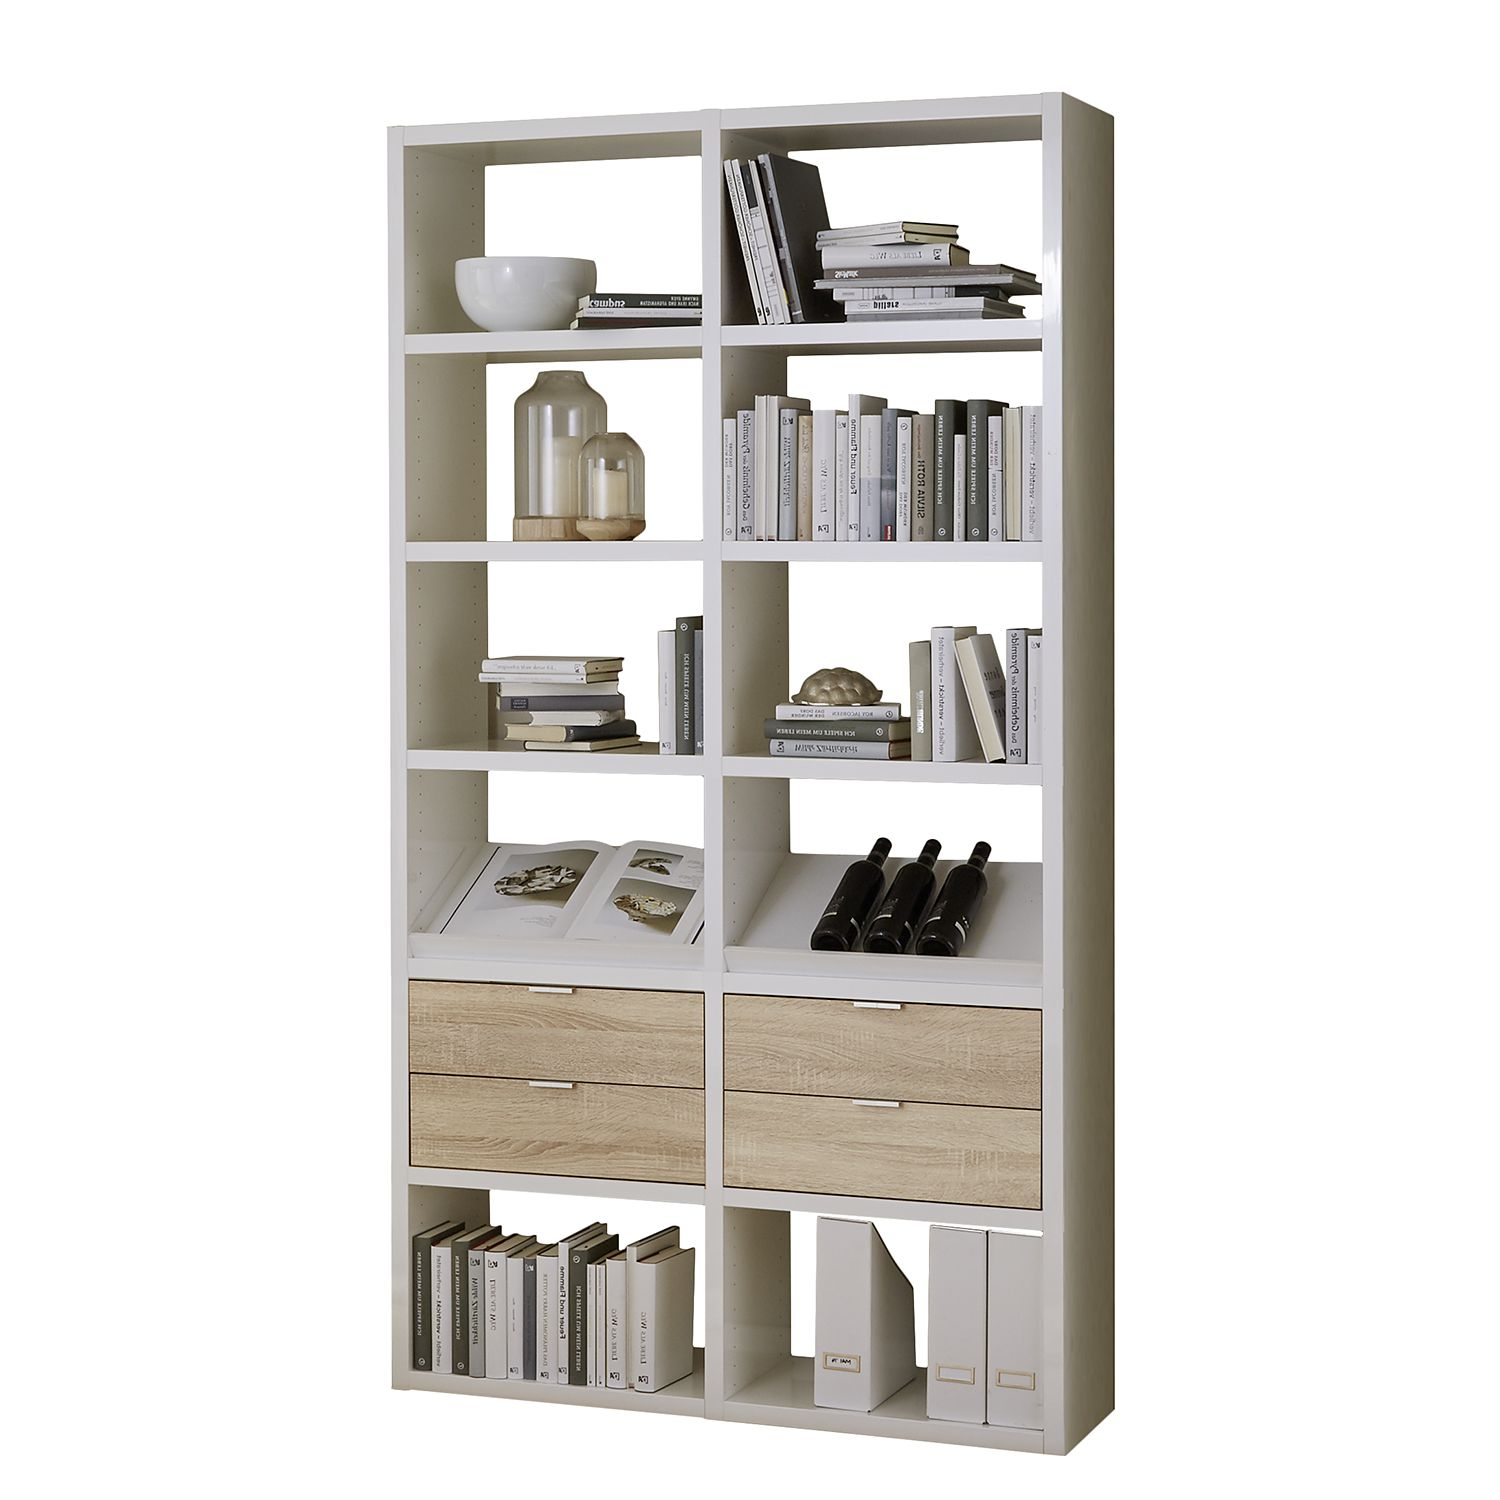 regal concept ix hochglanz wei eiche dekor g nstig. Black Bedroom Furniture Sets. Home Design Ideas